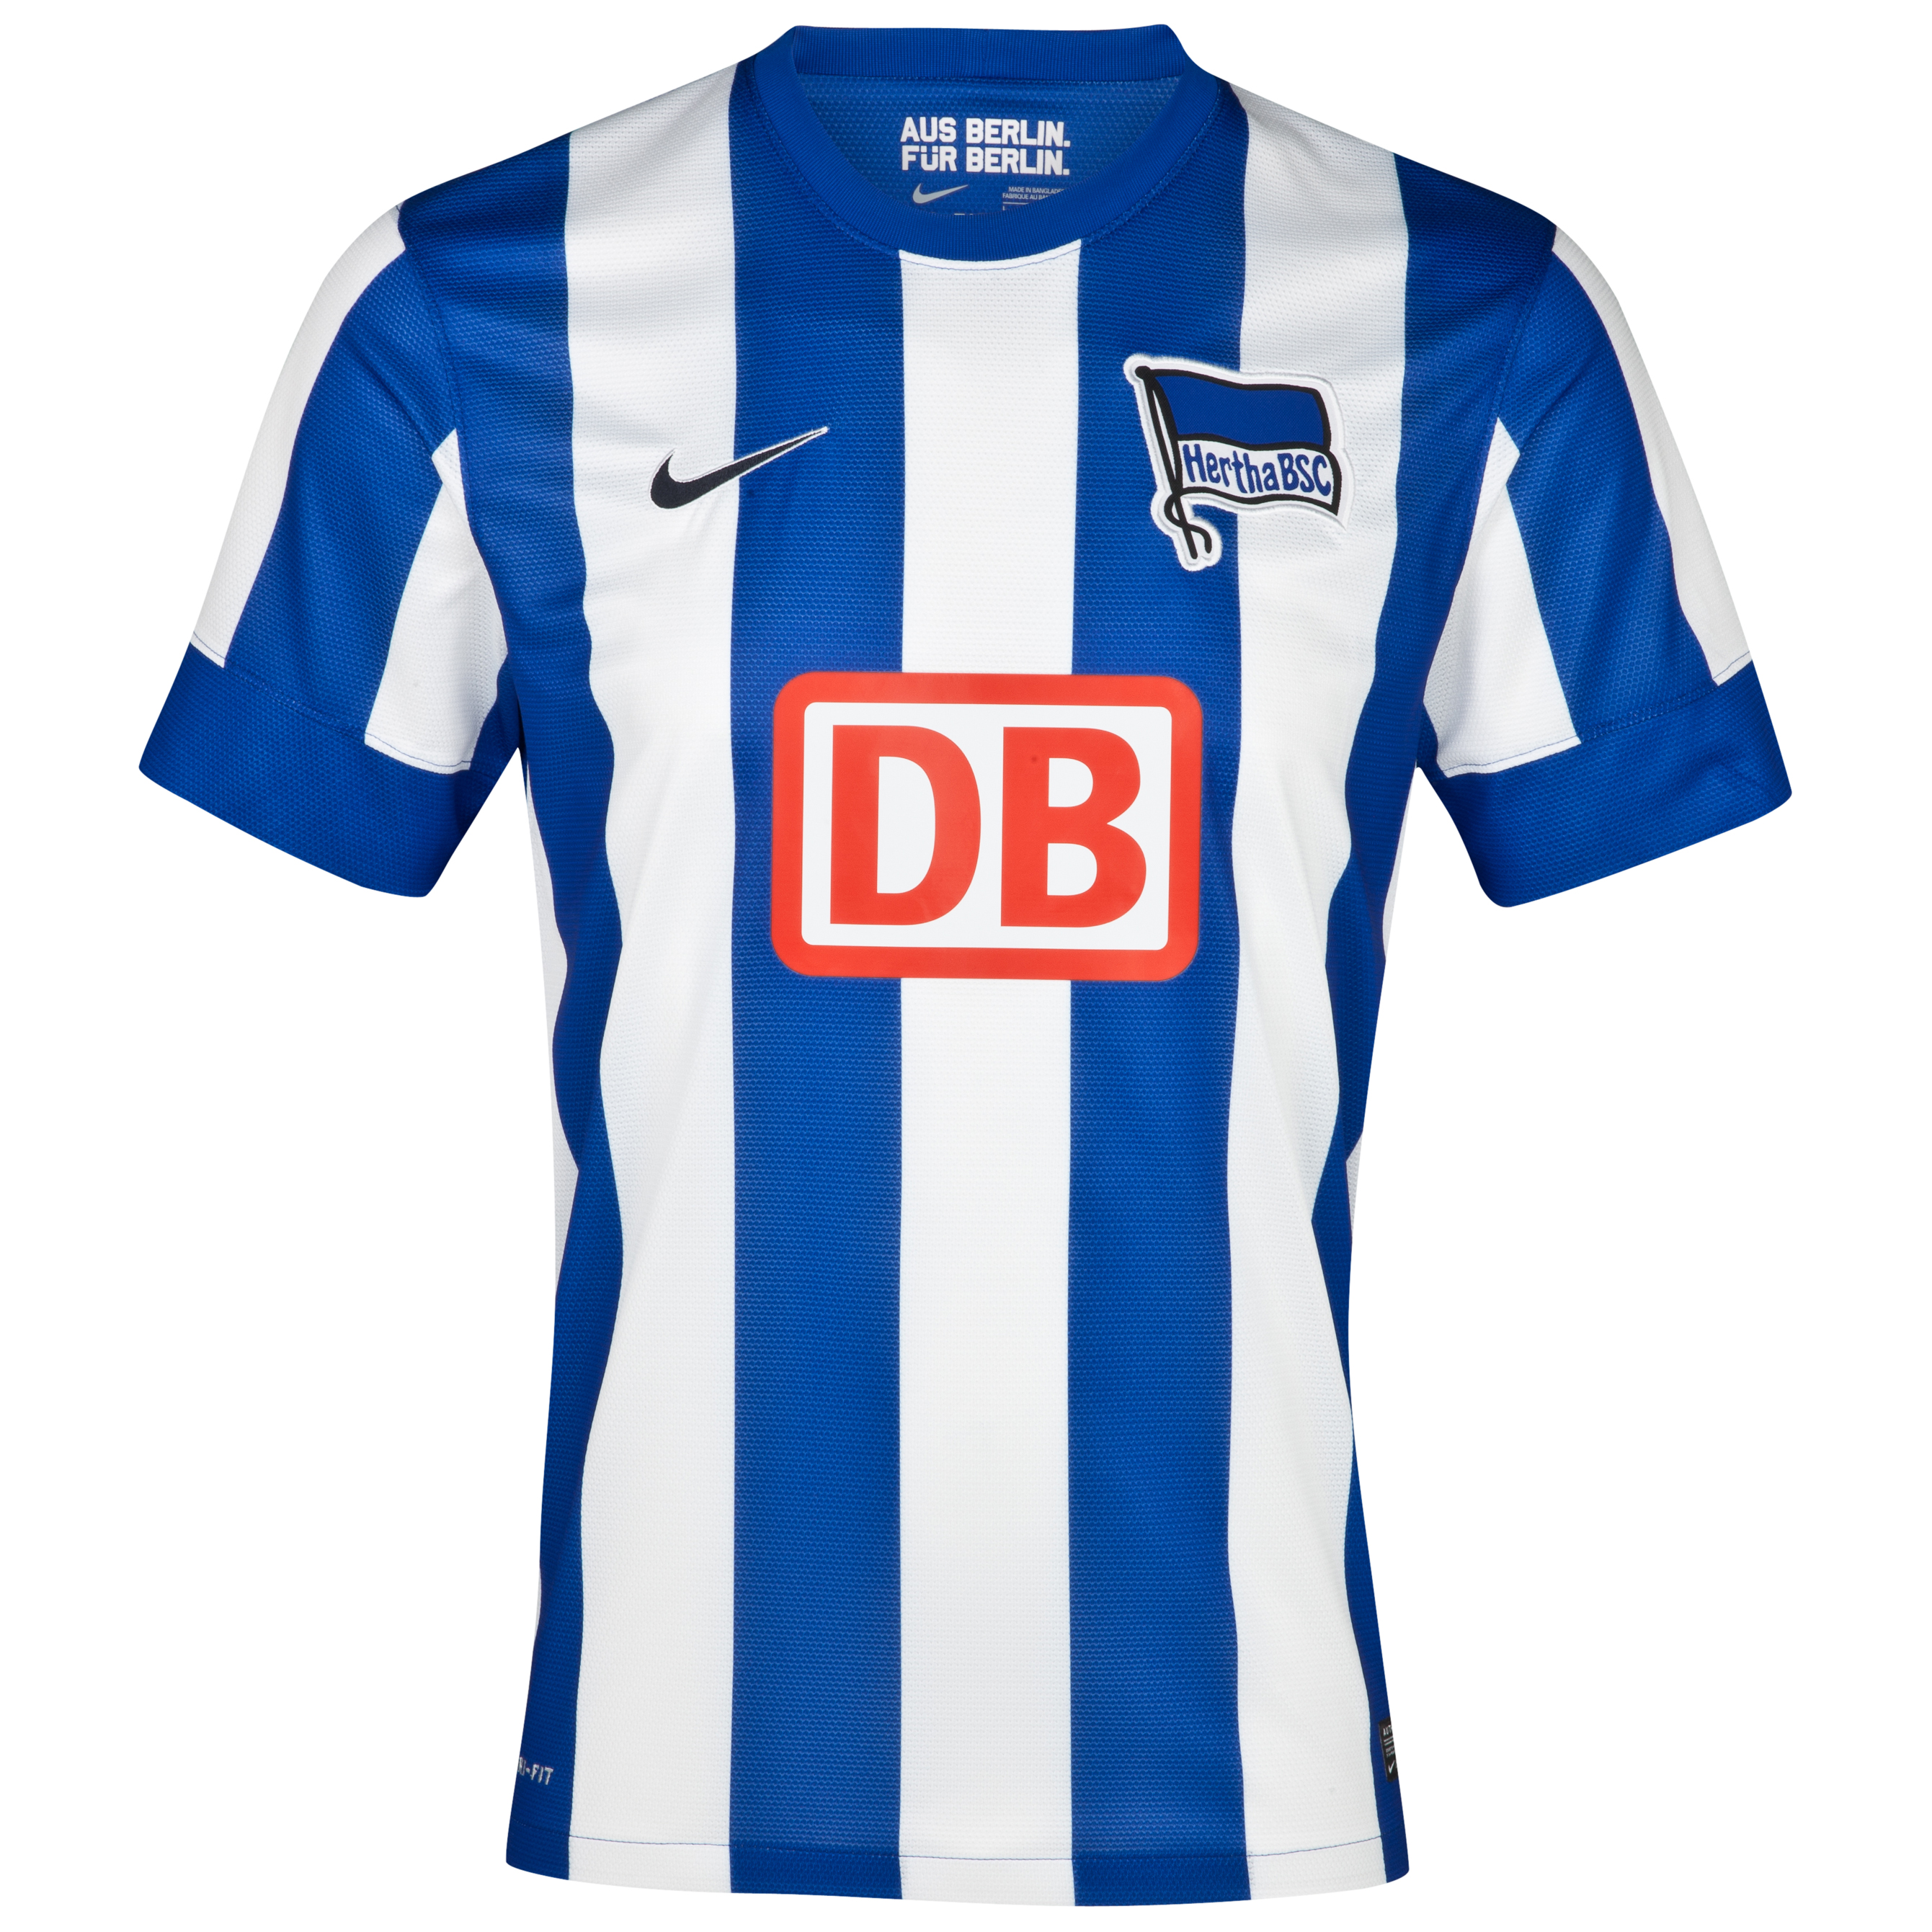 Hertha Berlin 2012/13 Home Shirt